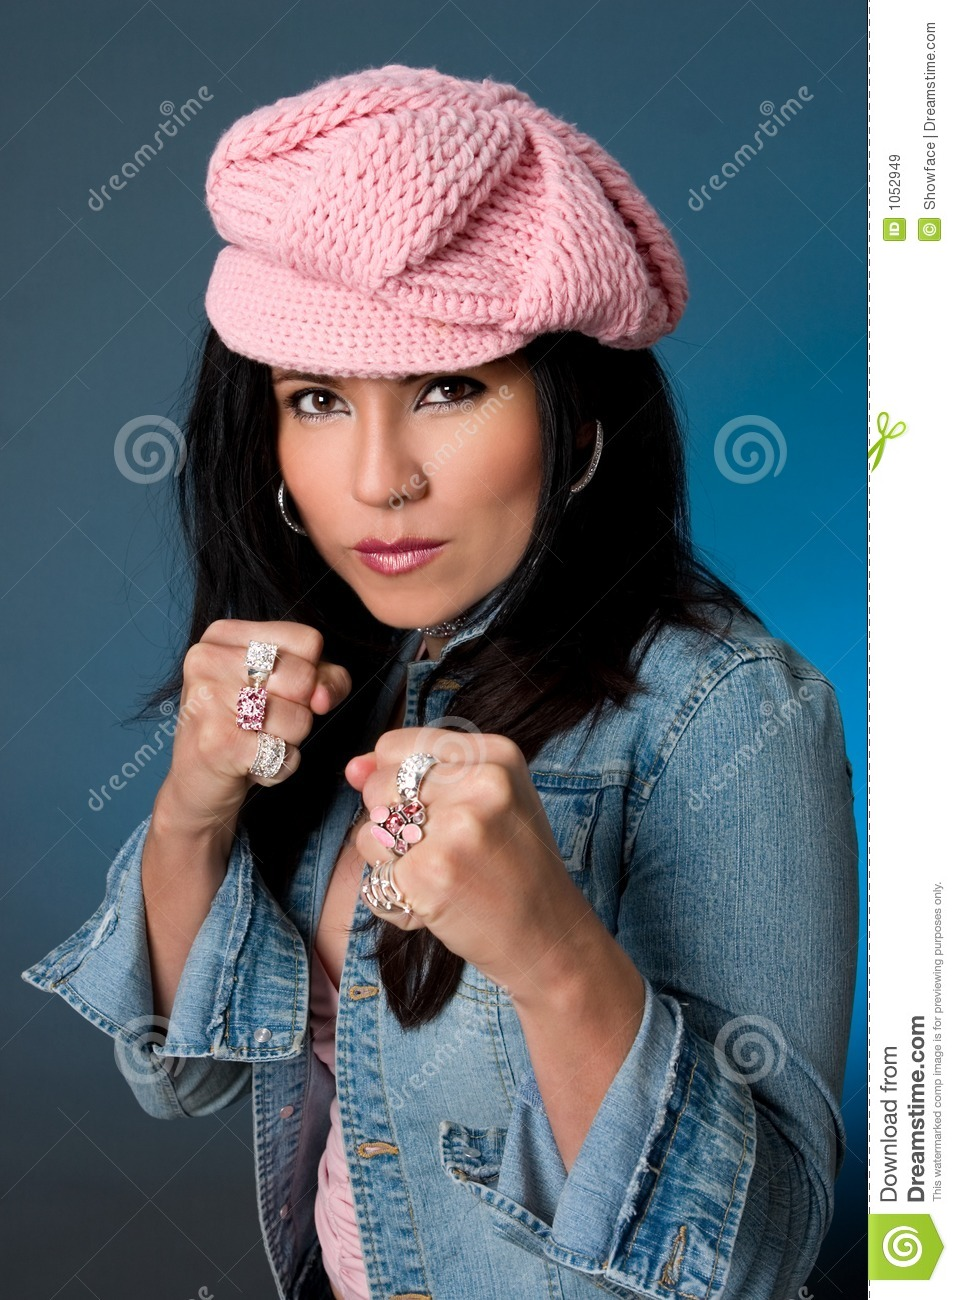 Female Knuckle Dusters Royalty Free Stock Images Image